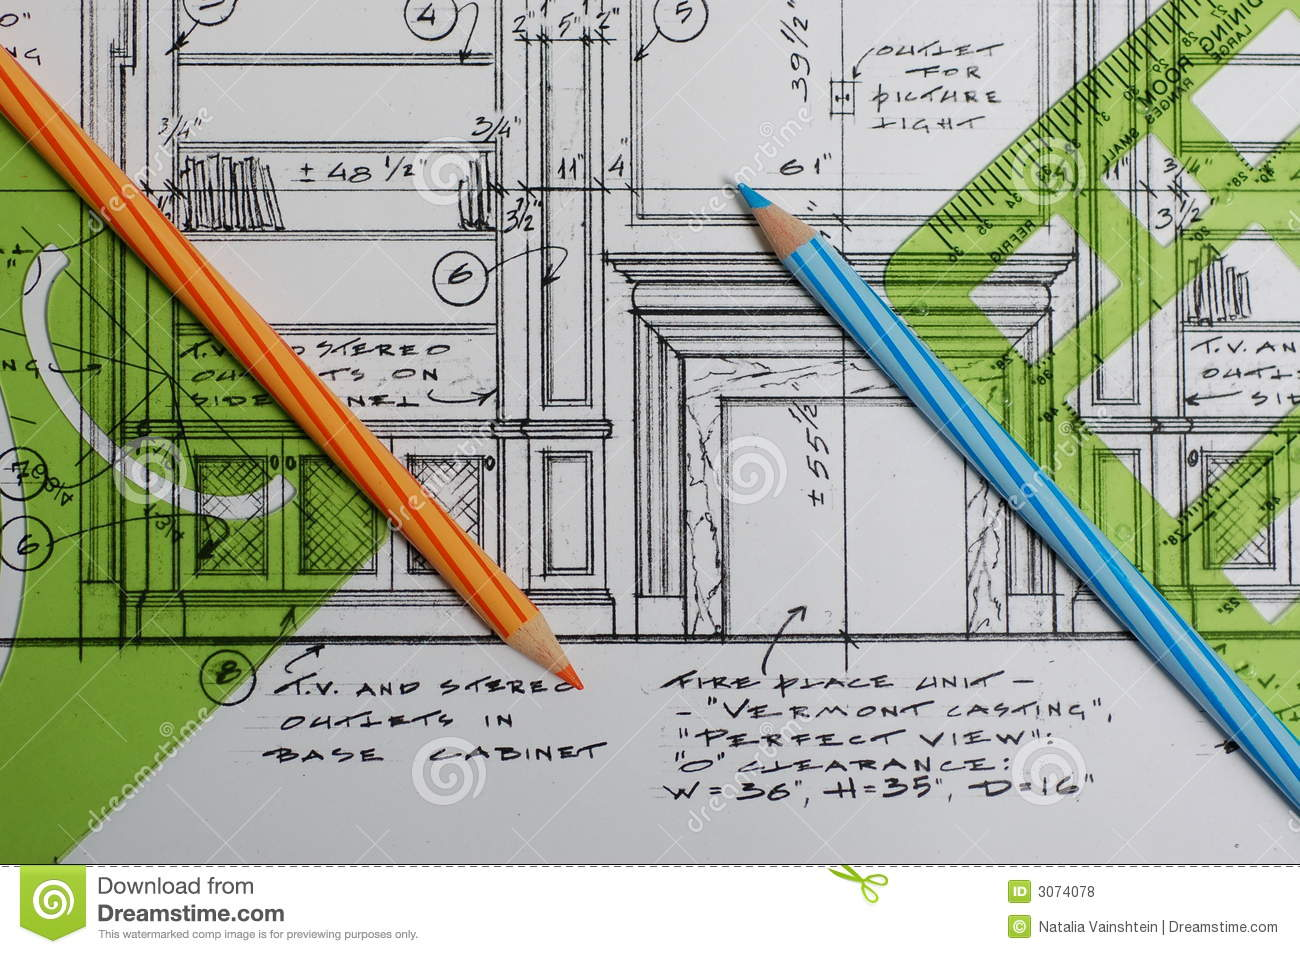 Interior Designers Drawings interior design drawings stock image - image: 3371721